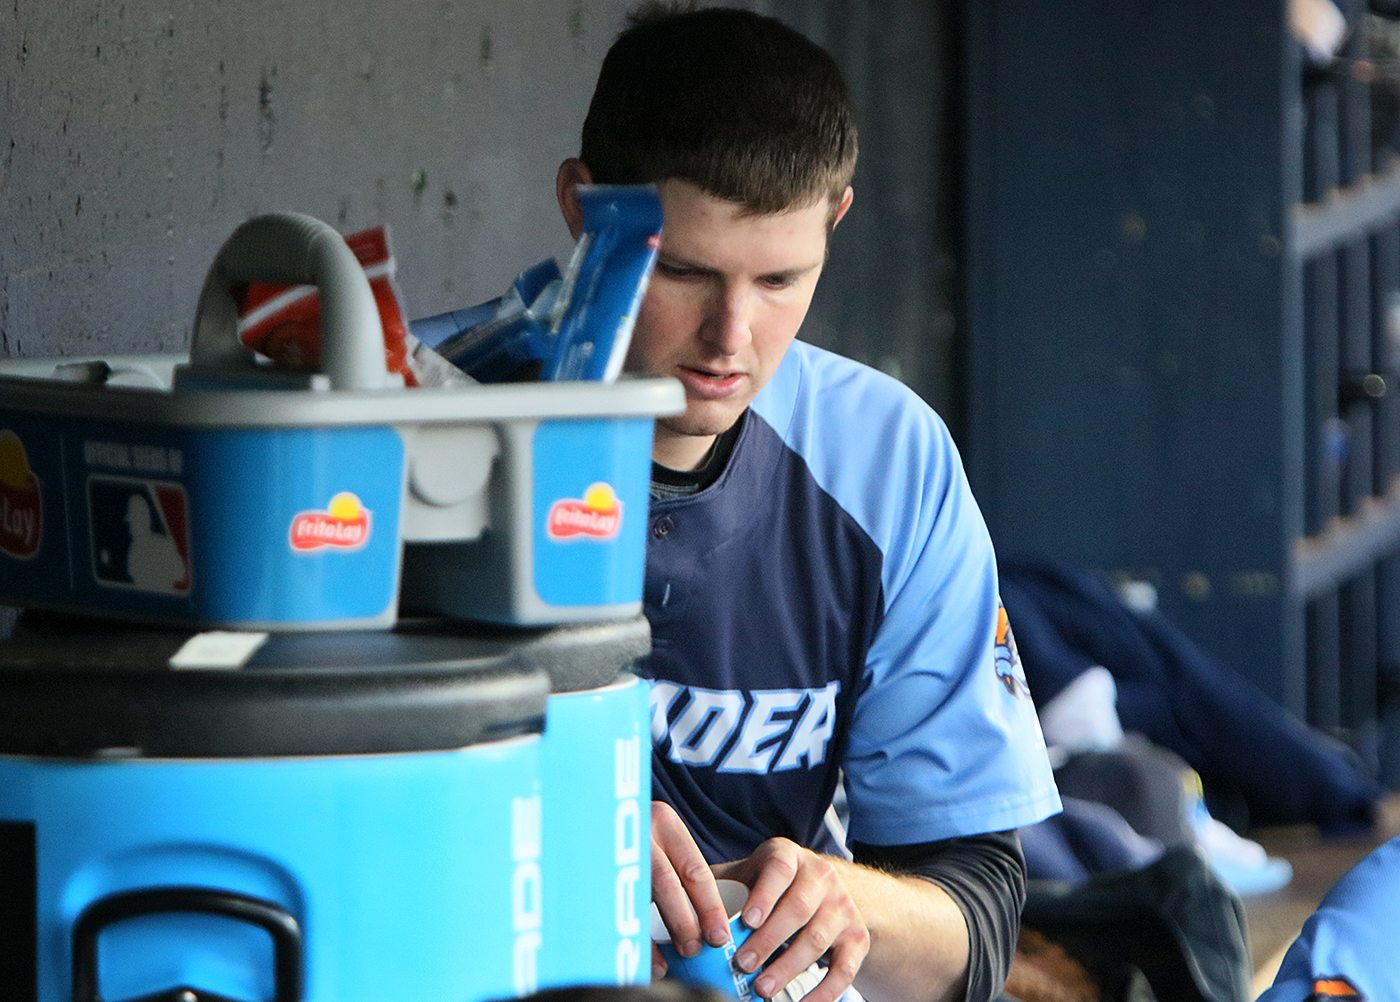 Trenton Thunder southpaw Jordan Montgomery in the dugout between innings during his Double A debut against the Portland Sea Dogs at Arm & Hammer Park in Trenton on Tuesday, April 12, 2016. Photo by Martin Griff.